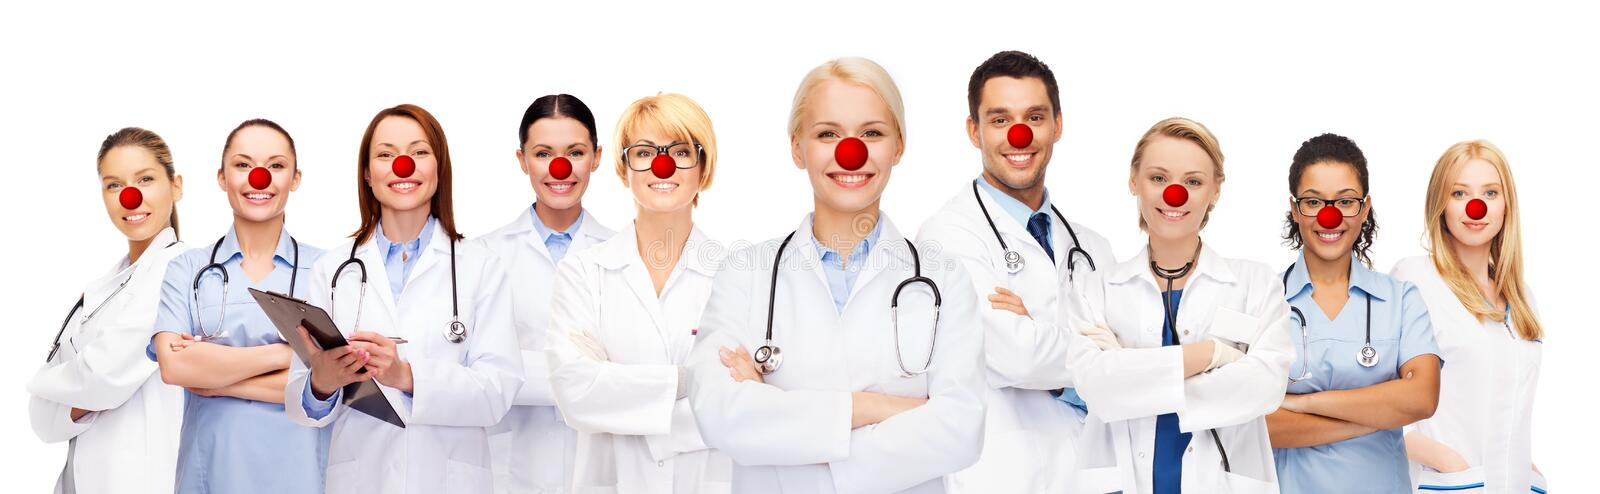 Group of smiling doctors at red nose day royalty free stock photography